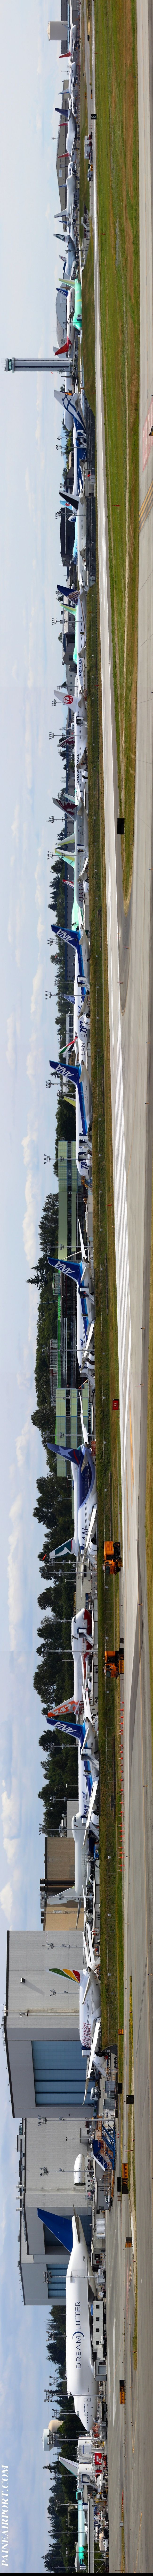 How many different 787 can you count in this panoramic shot of Paine field - Boeing Factory?